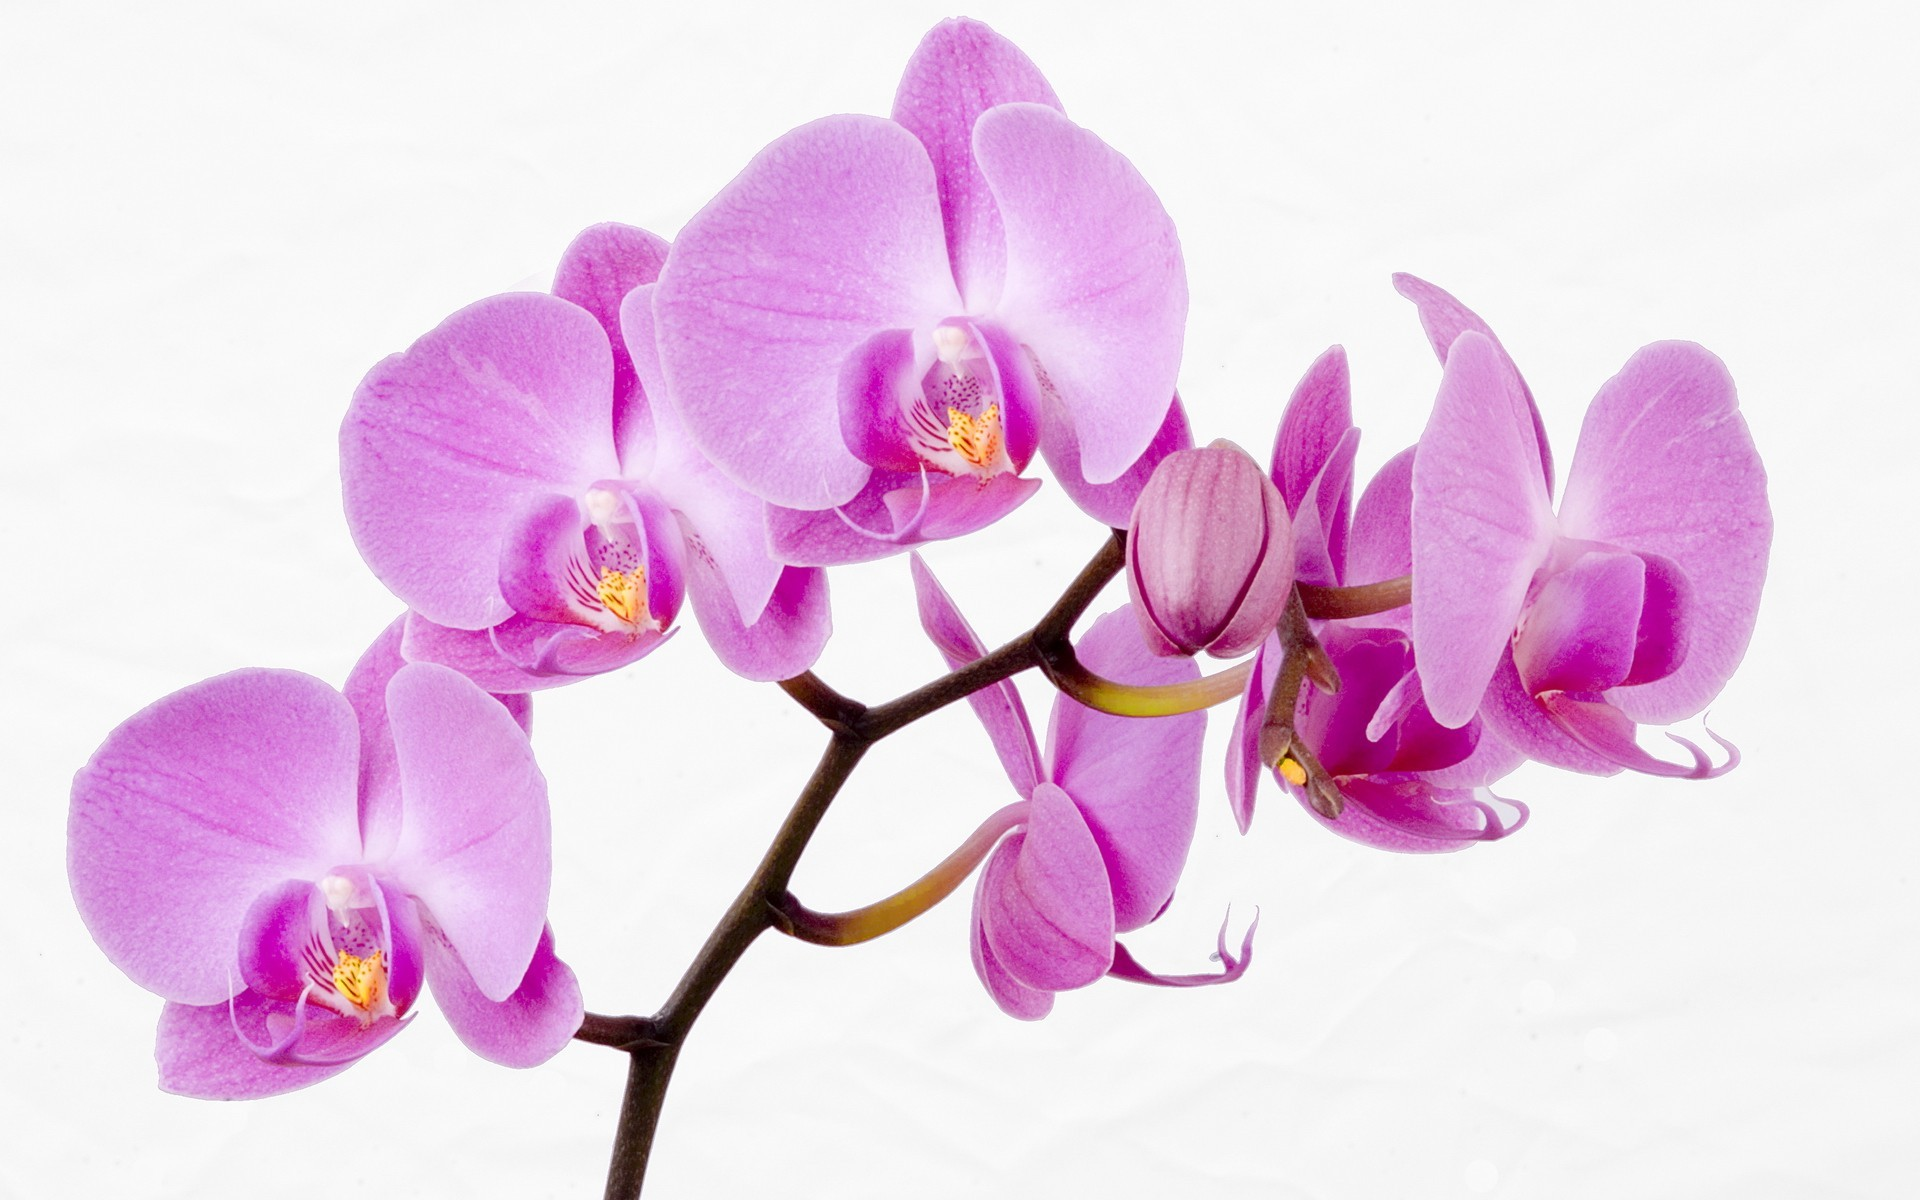 Flowers white background orchids pink wallpaper allwallpaper flowers white background orchids pink wallpaper mightylinksfo